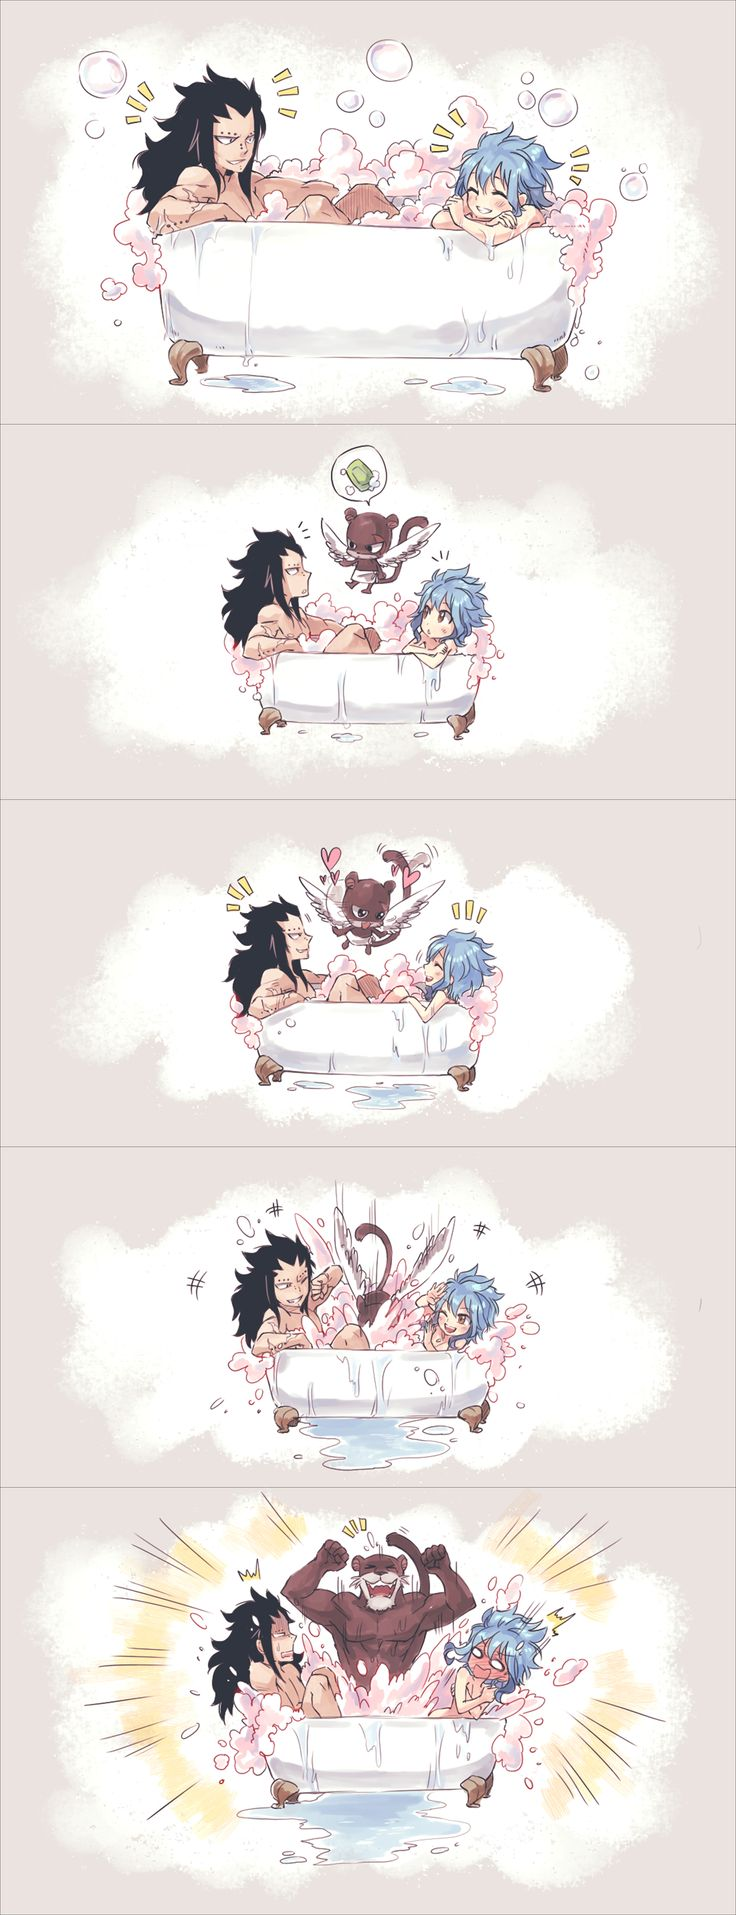 Fairy Tail - Gajeel, Lily panther and Levy